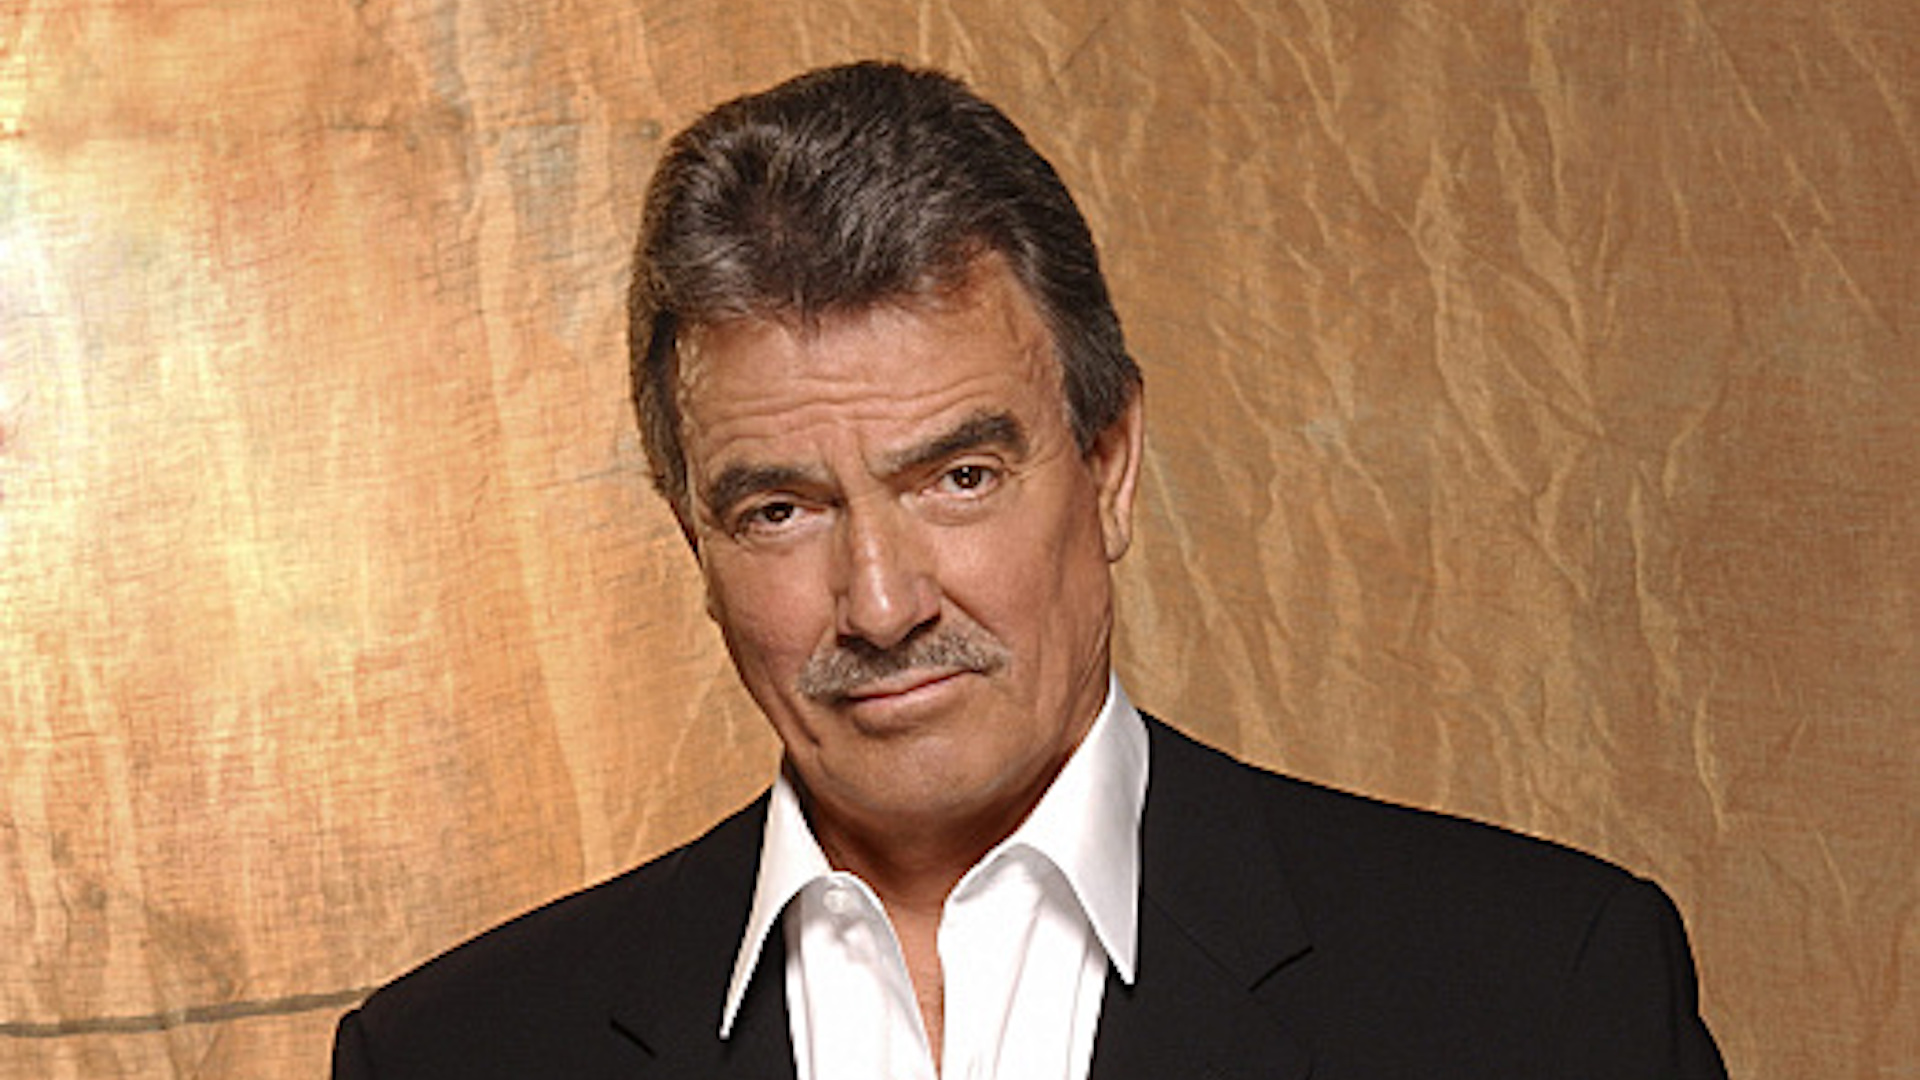 Eric Braeden from The Young and the Restless